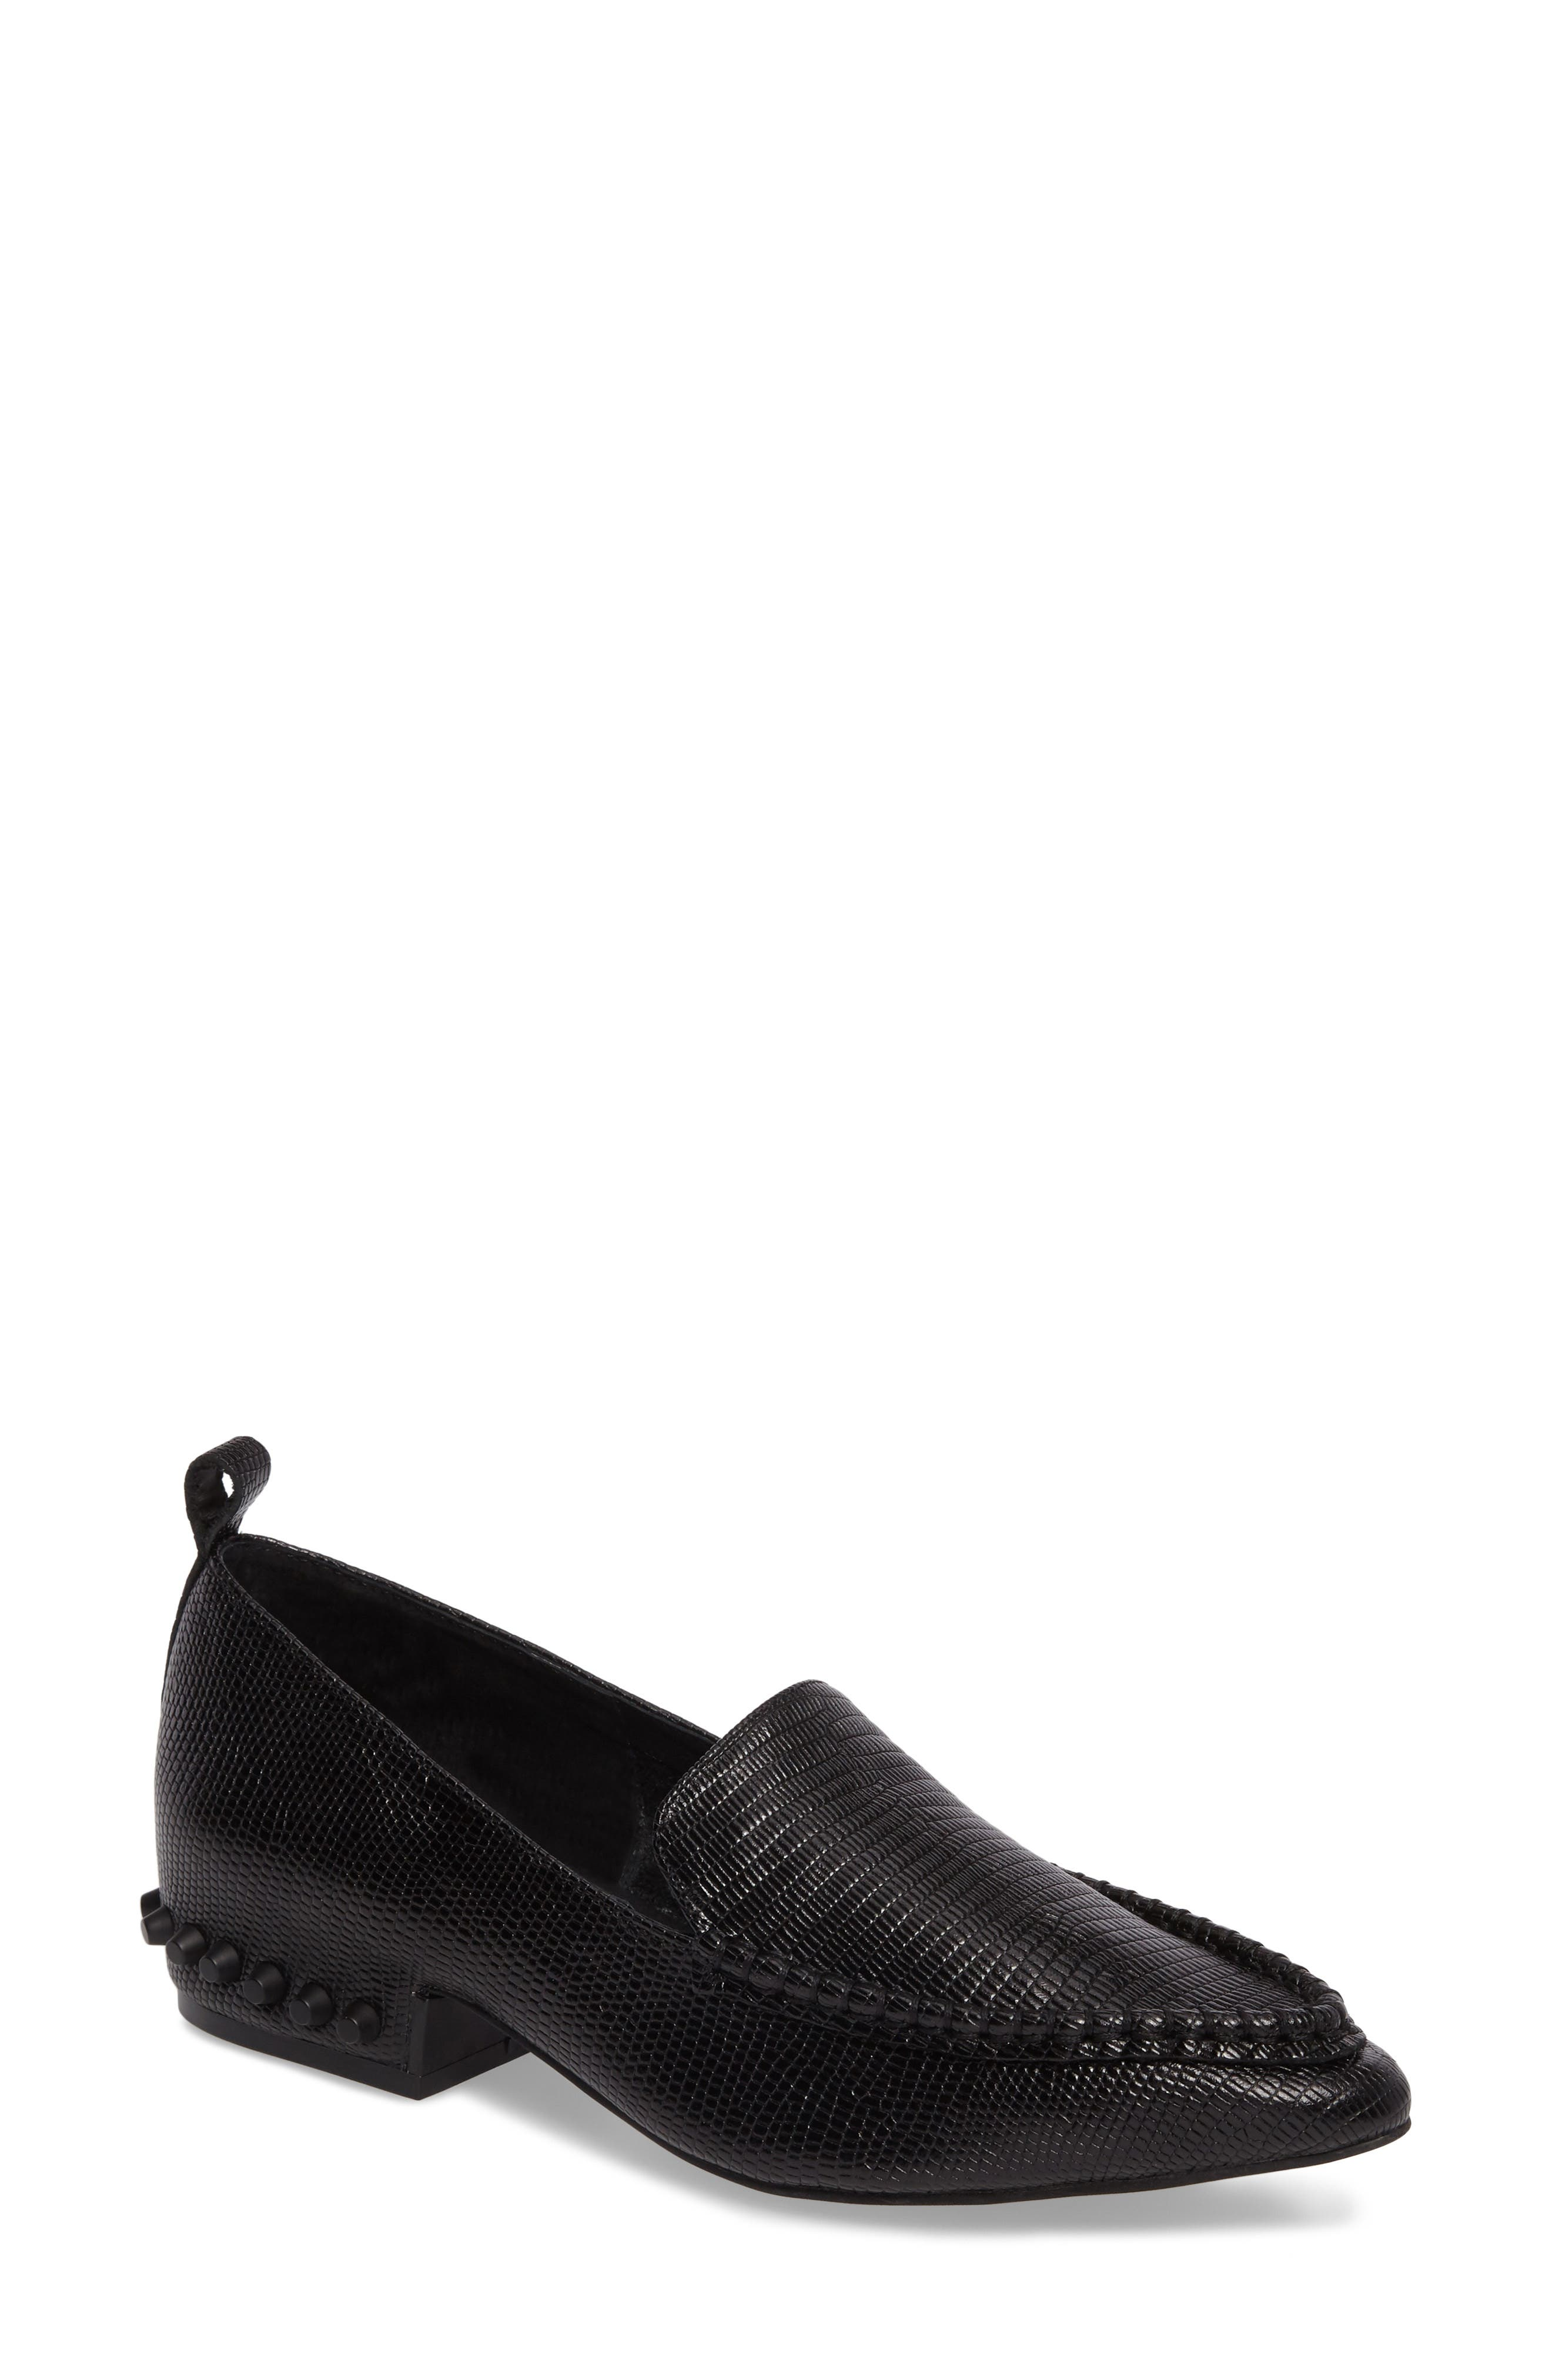 Barnett Studded Loafer,                         Main,                         color, 002